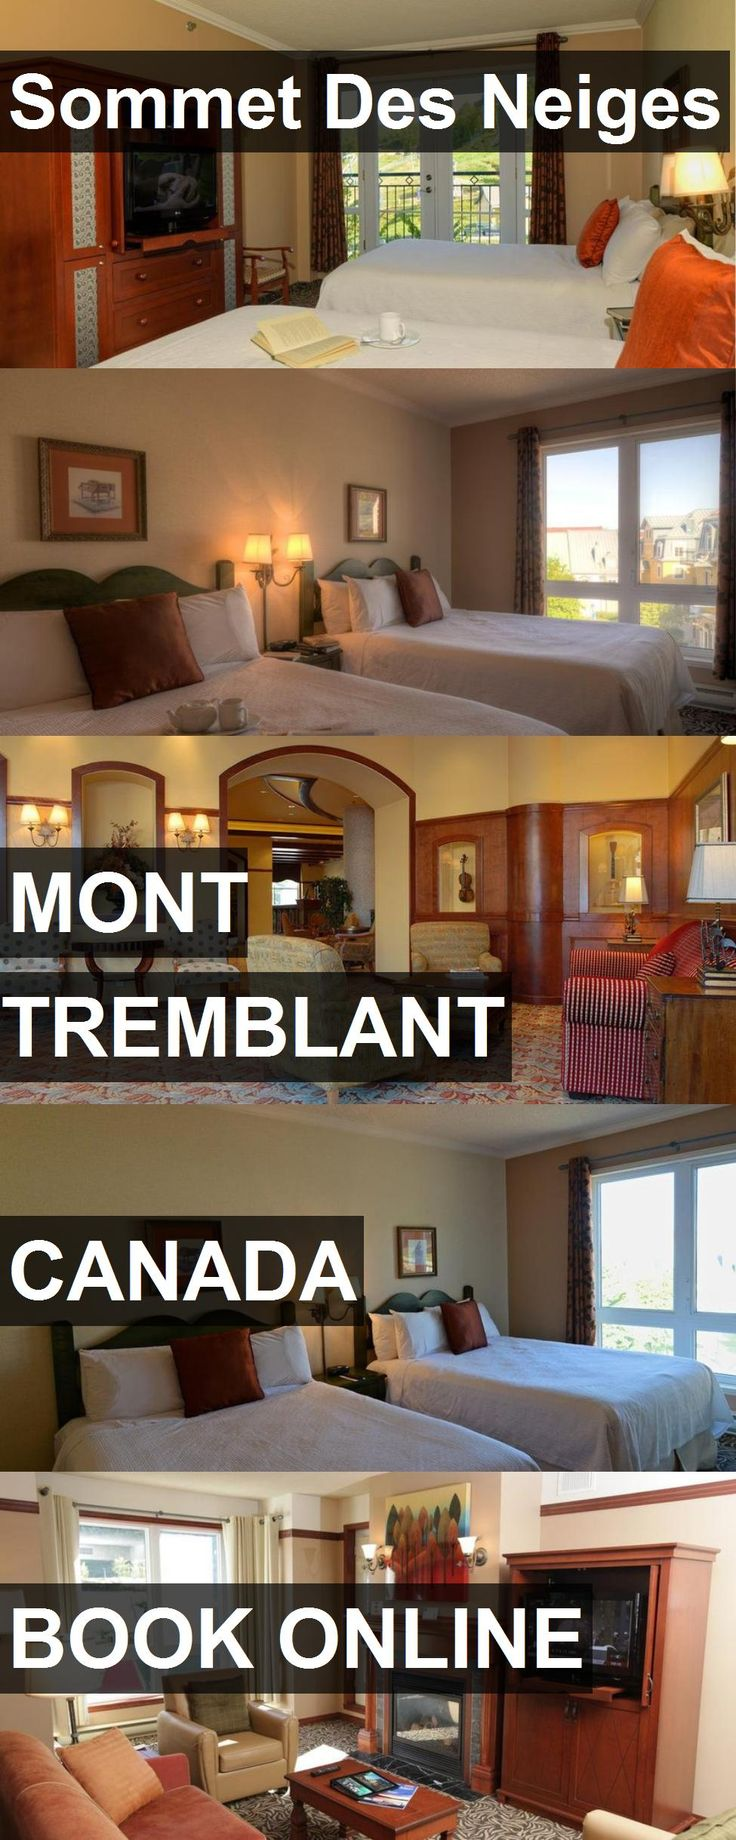 Hotel Sommet Des Neiges in Mont Tremblant, Canada. For more information, photos, reviews and best prices please follow the link. #Canada #MontTremblant #travel #vacation #hotel